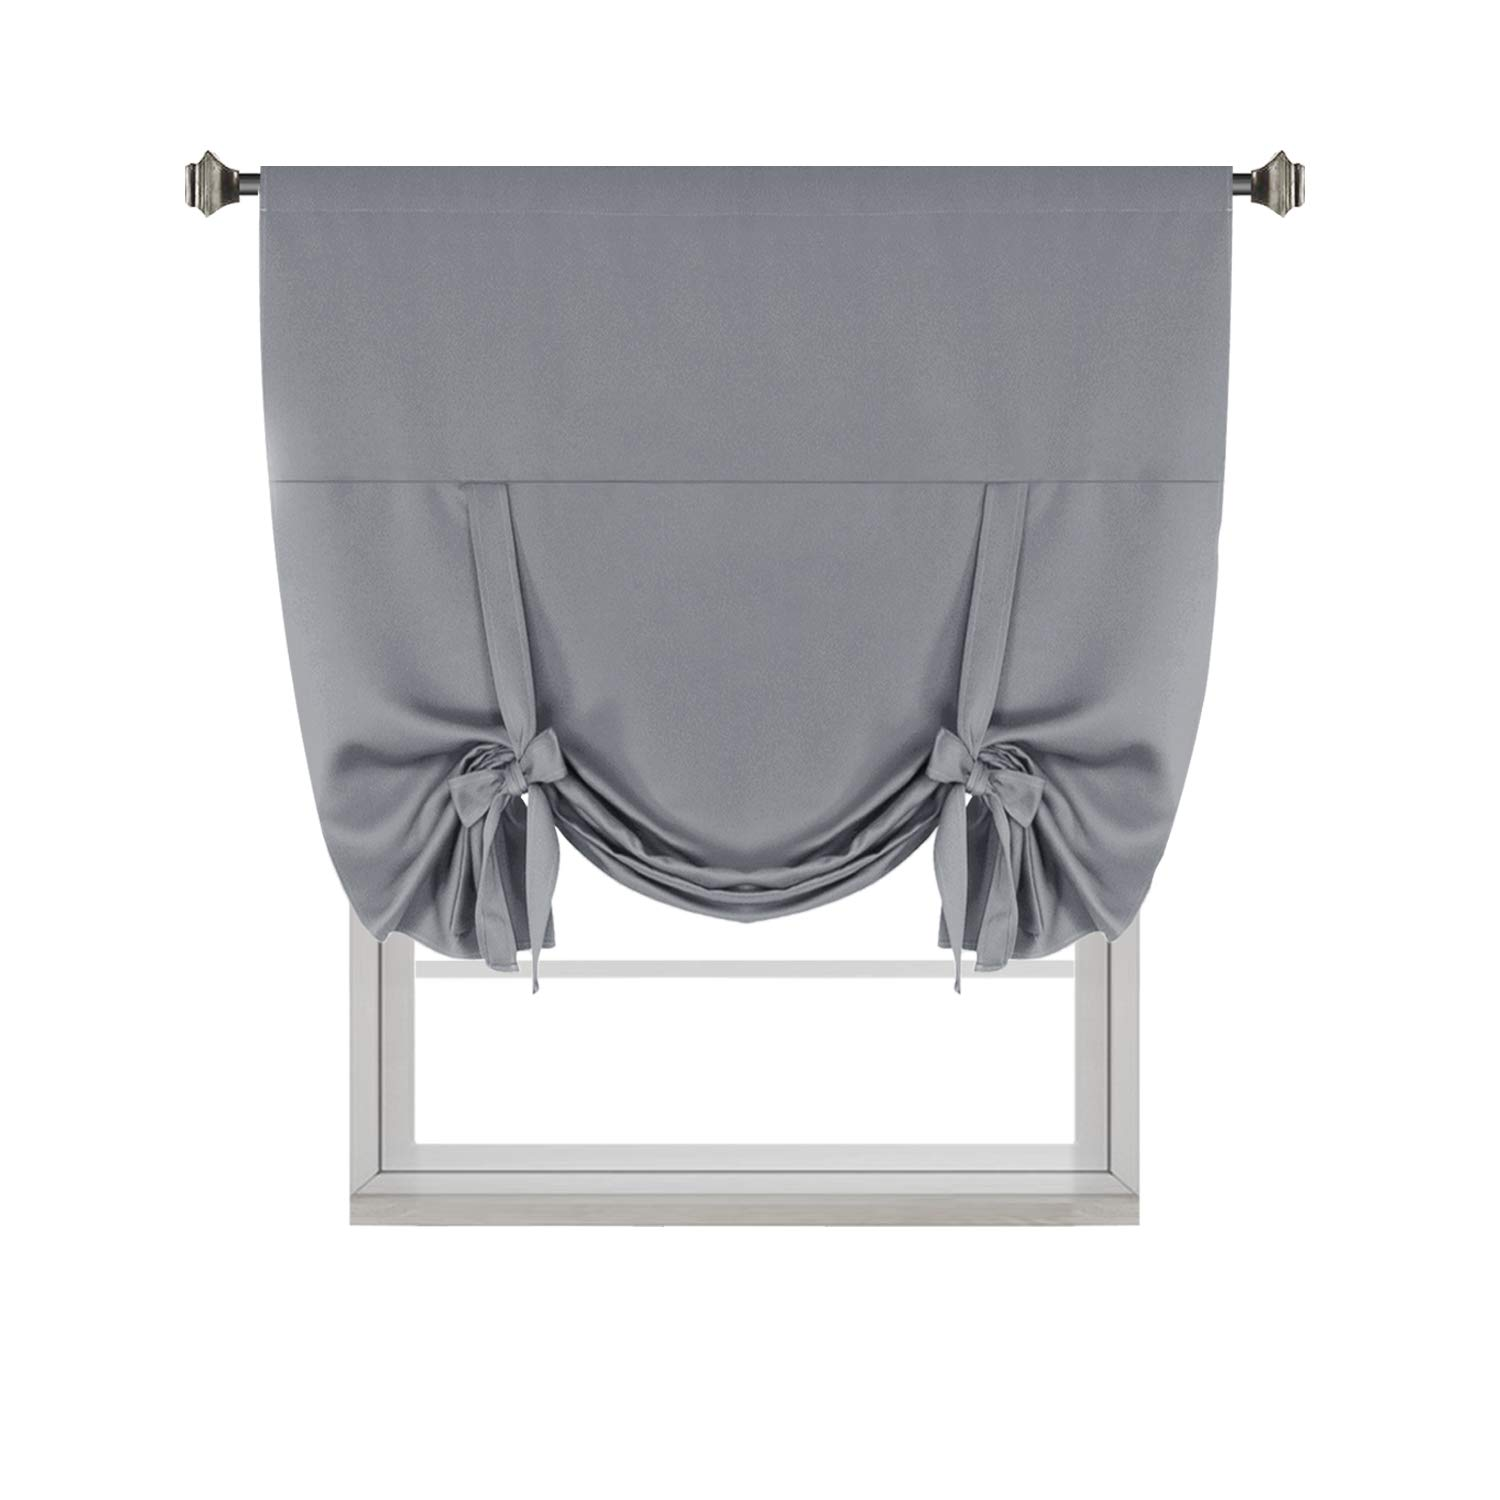 H.VERSAILTEX Premier Thermal Insulated Blackout Curtain Tie Up Window Shade (Rod Pocket Panel) - 42'' Wide by 63'' Long - Dove Gray